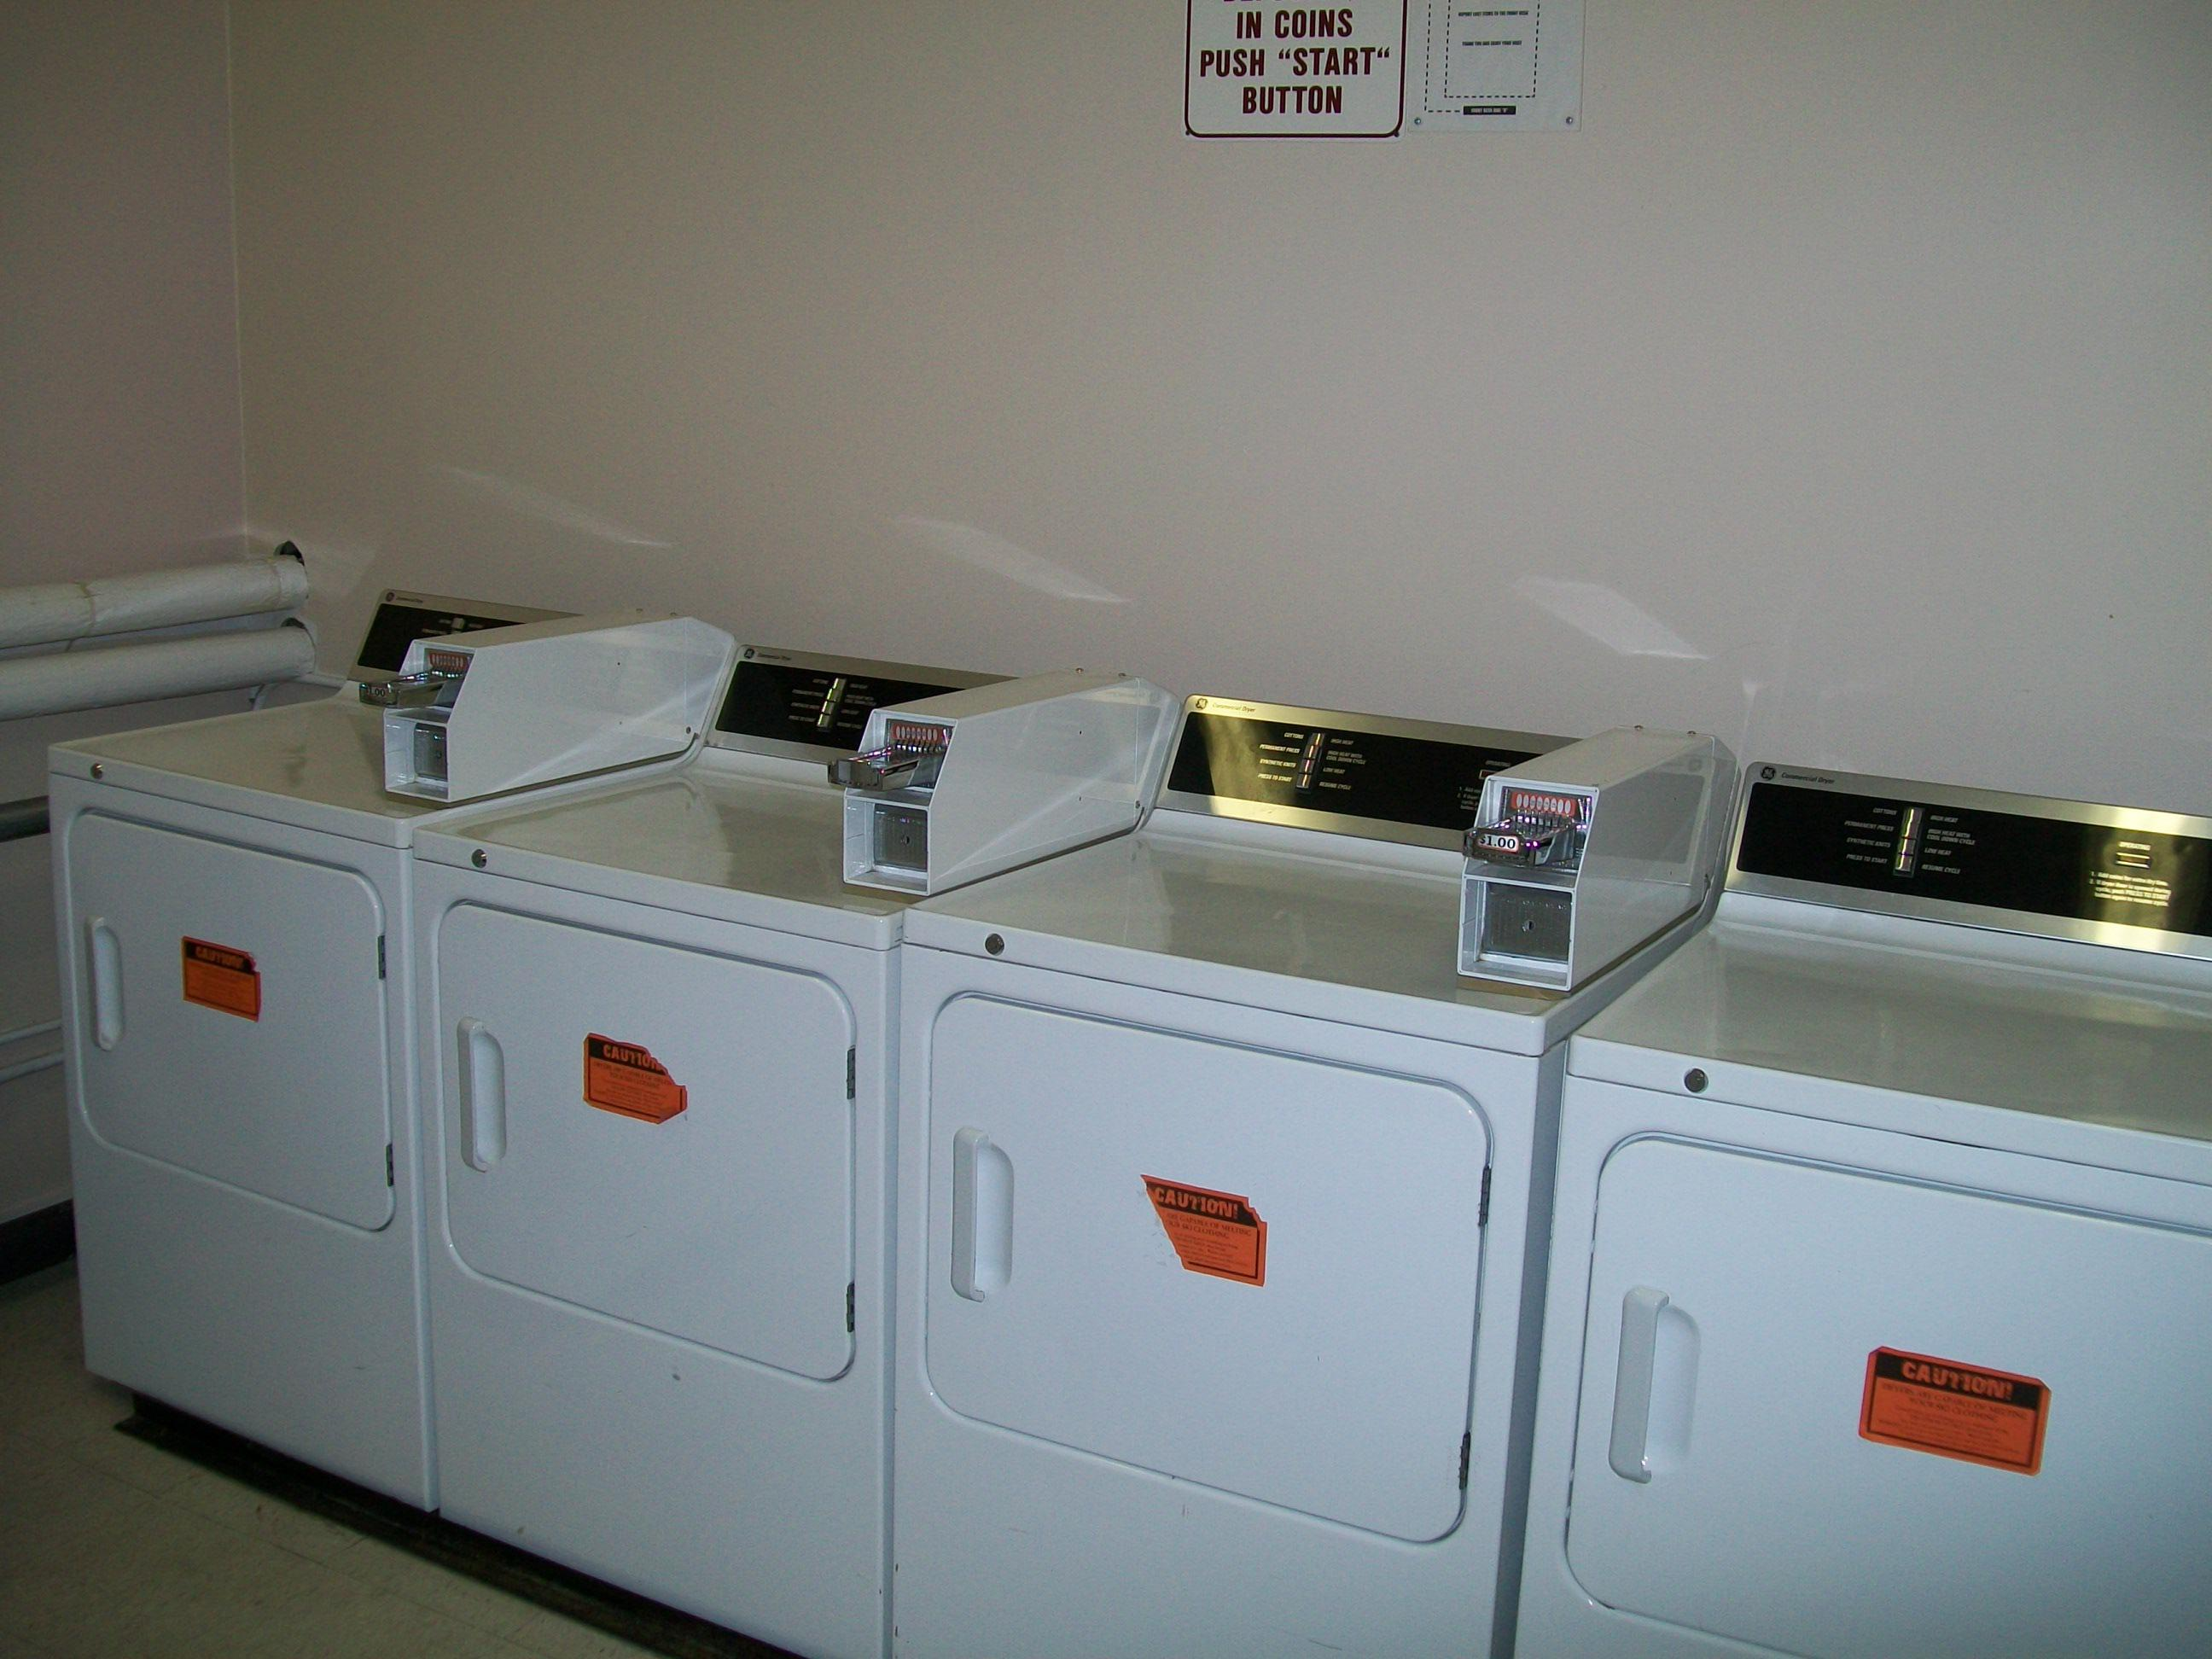 Coin-operated Washer/Dryer is down the hall